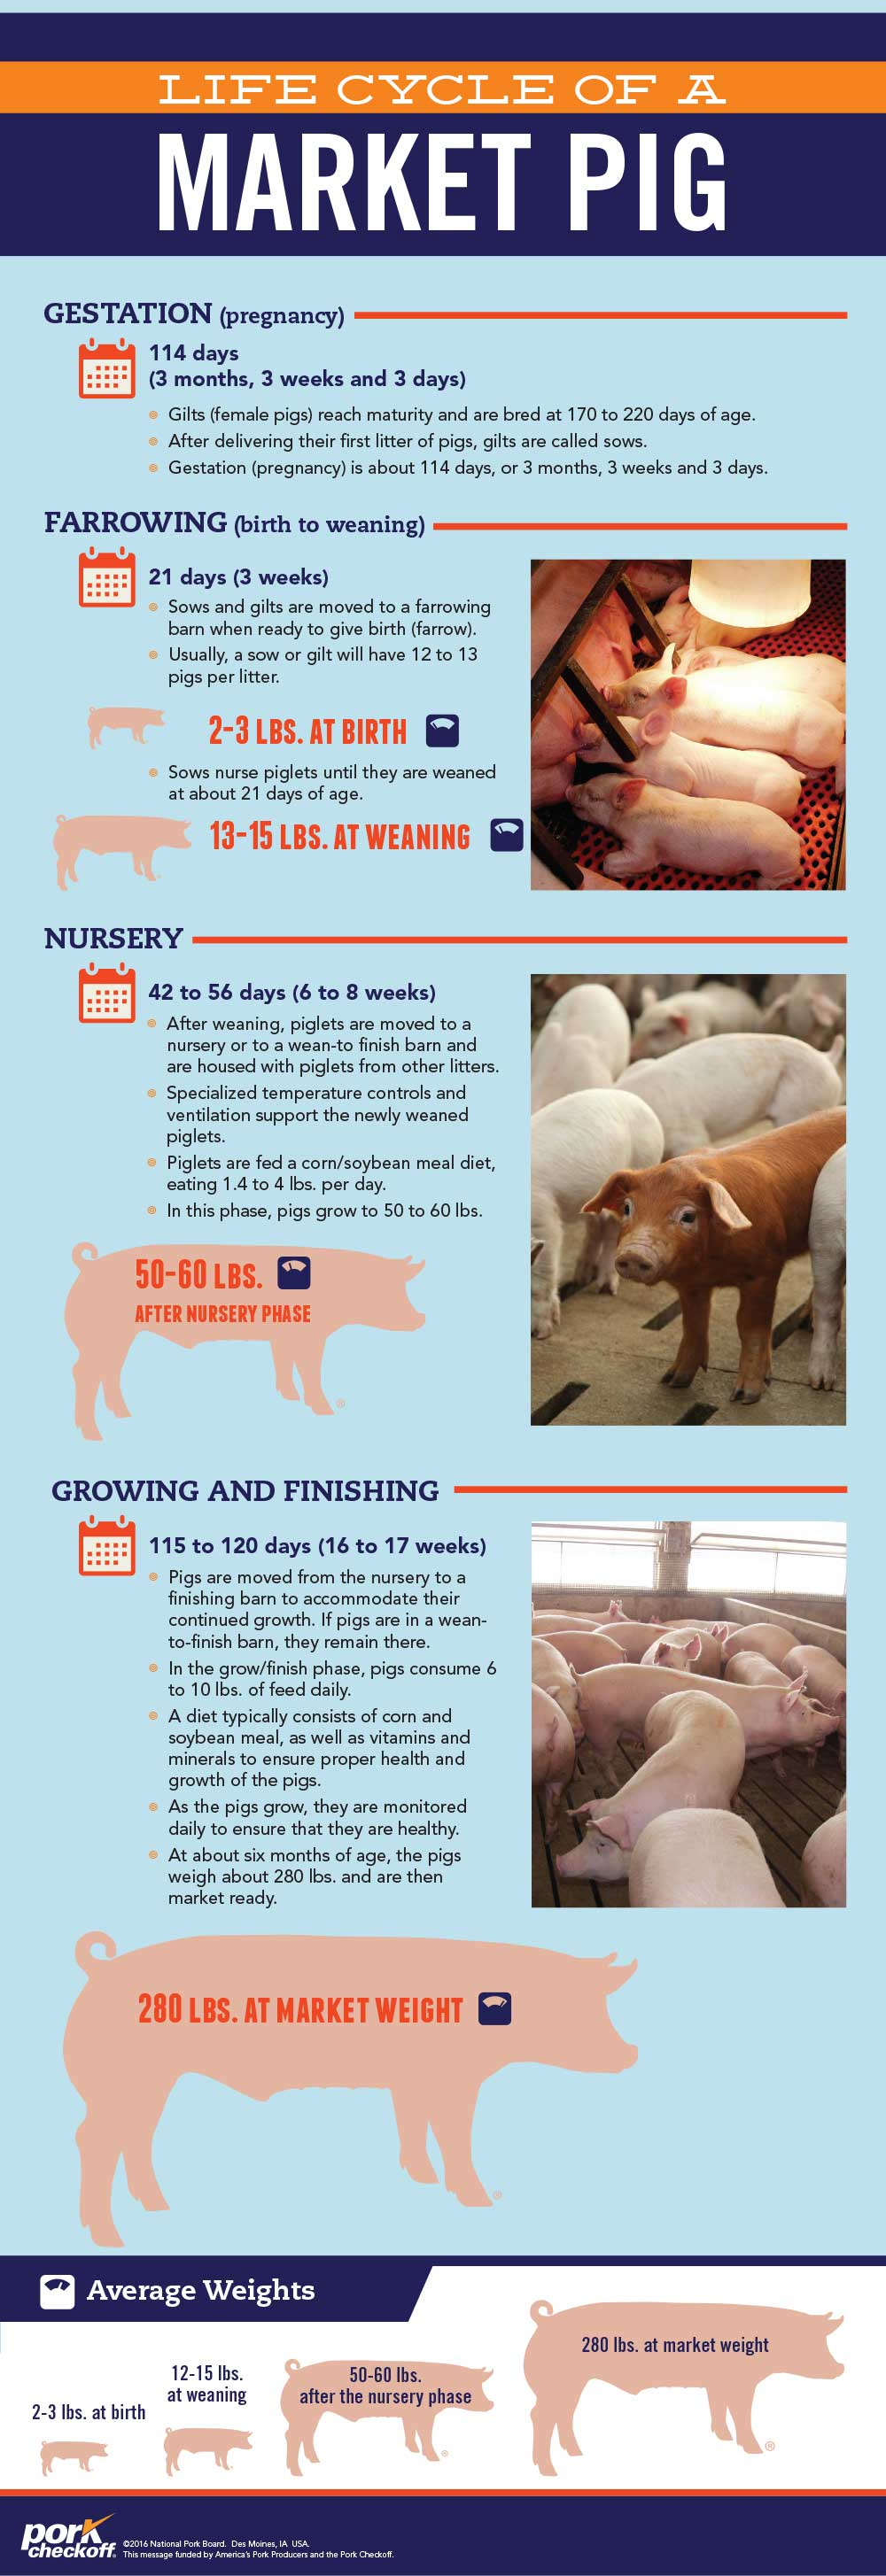 What Responsible Antibiotic Use Means on a Pig Farm